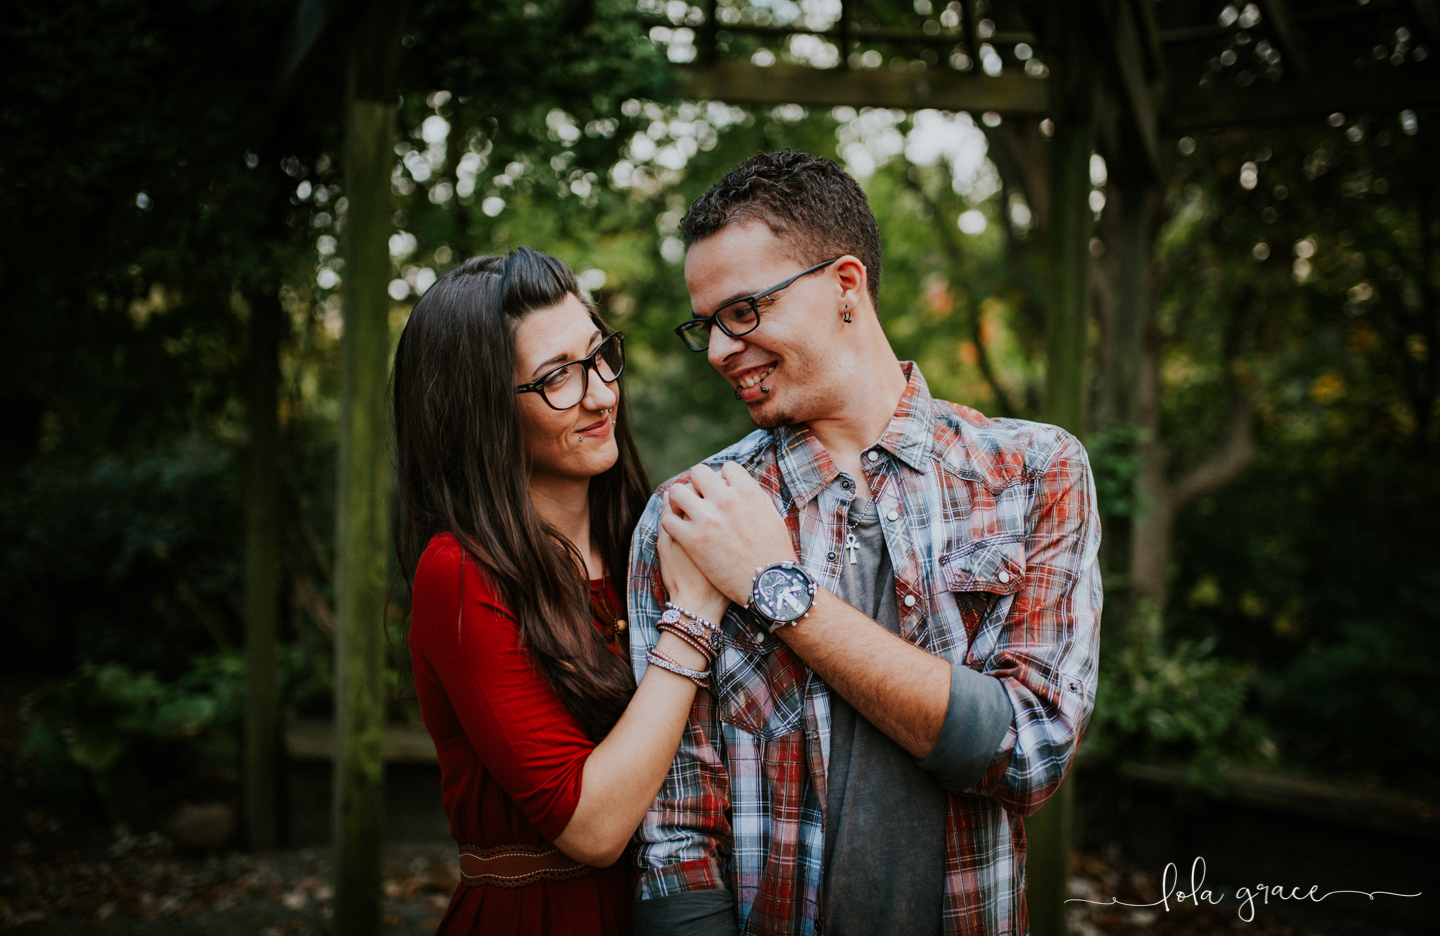 lola-grace-photography-chelsea-jesse-engagement-photos-17.jpg